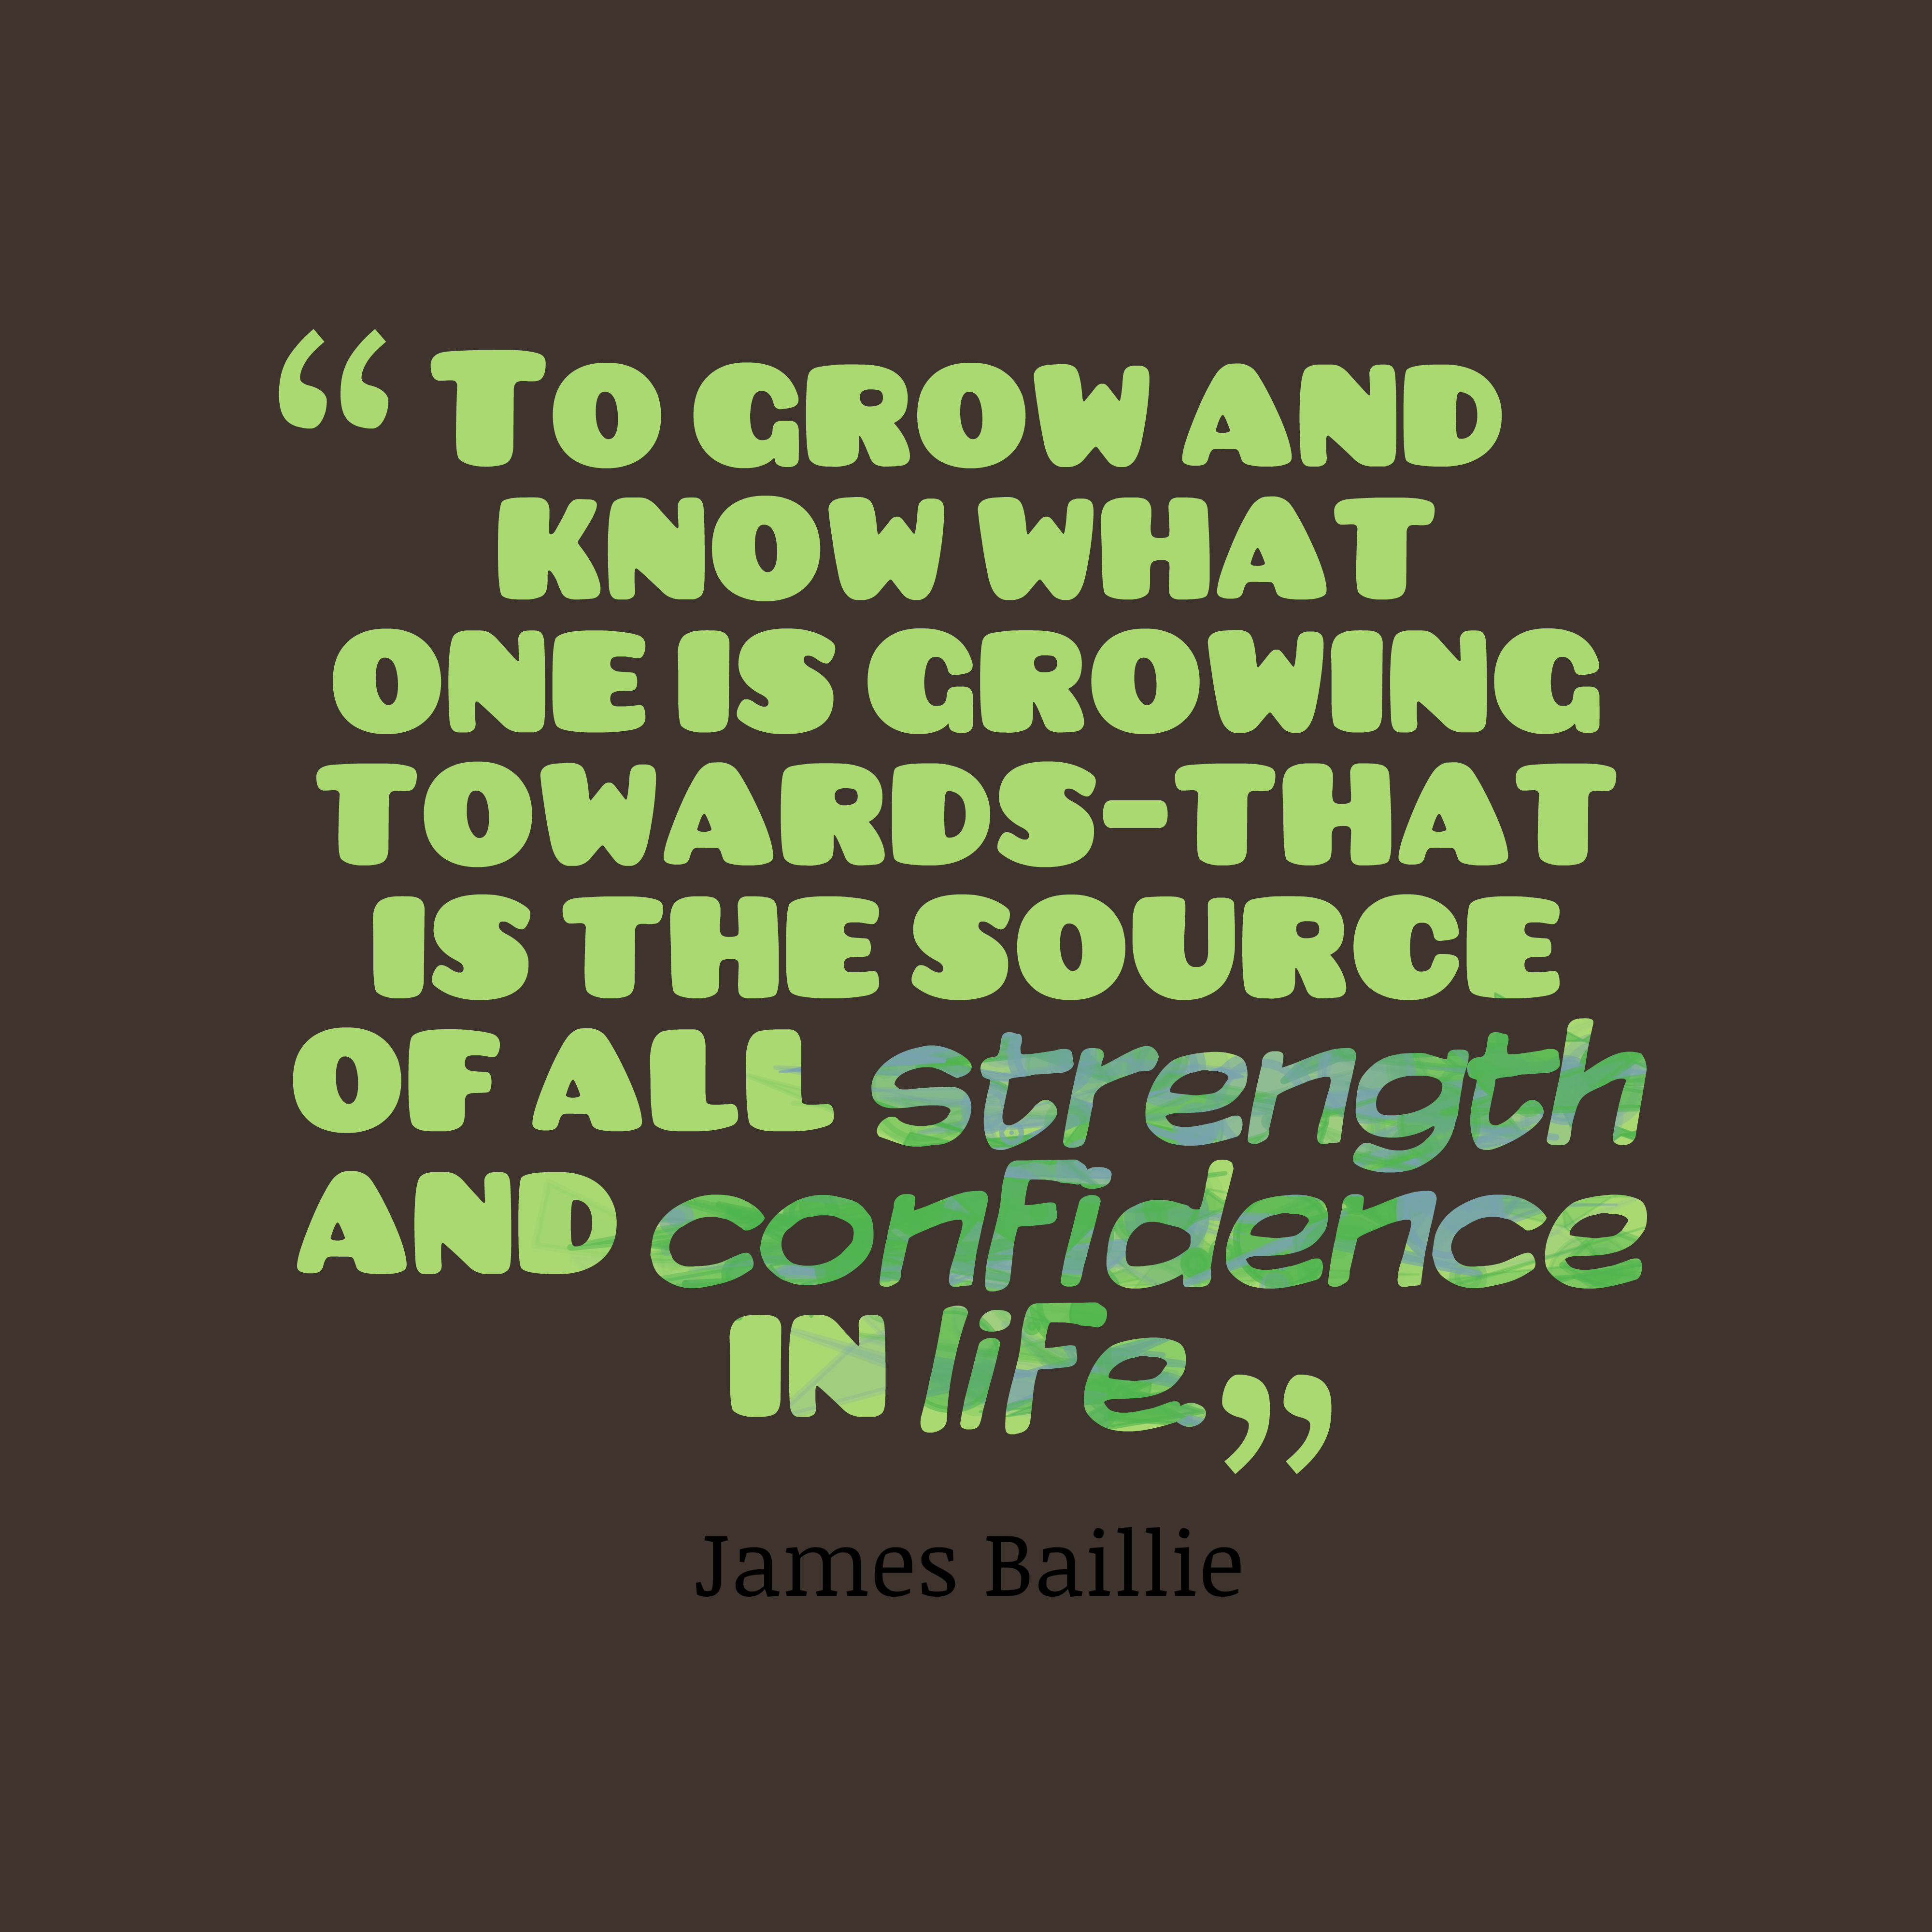 Quotes image of To grow and know what one is growing towards-that is the source of all strength and confidence in life.